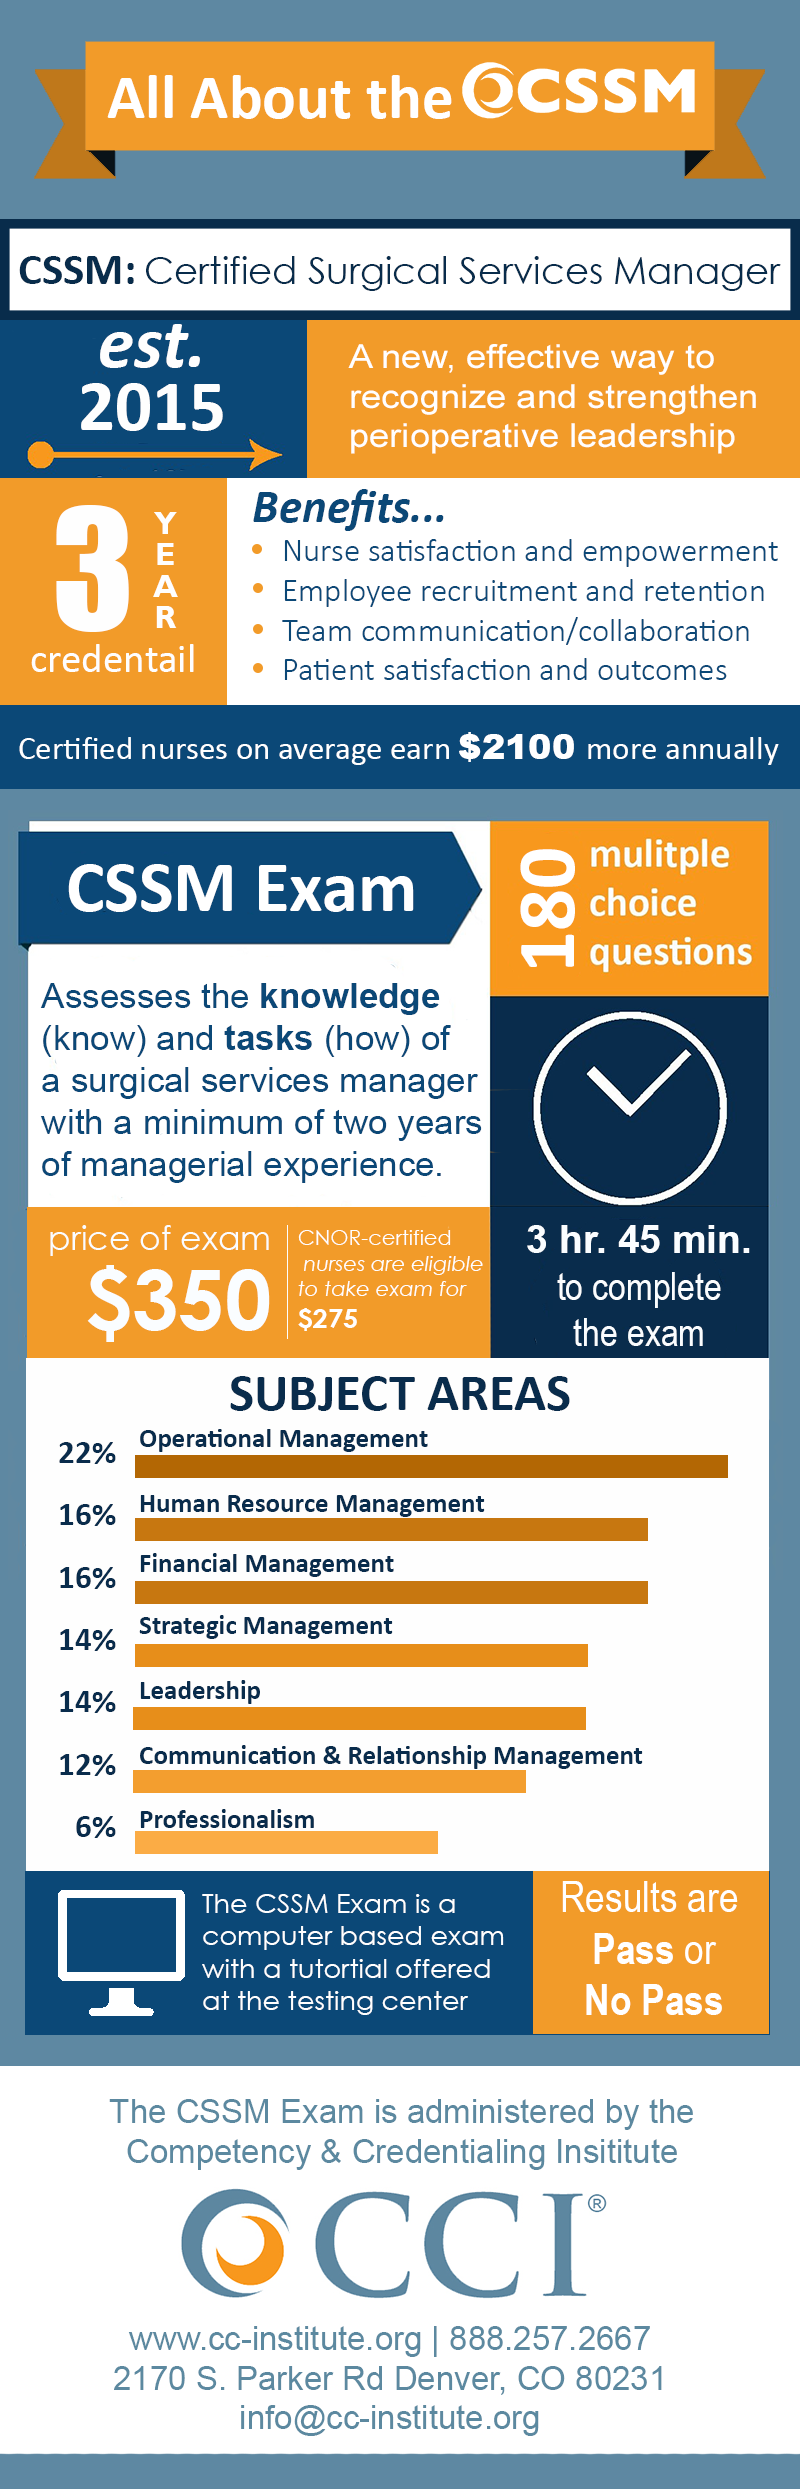 All About the CSSM [Infographic]